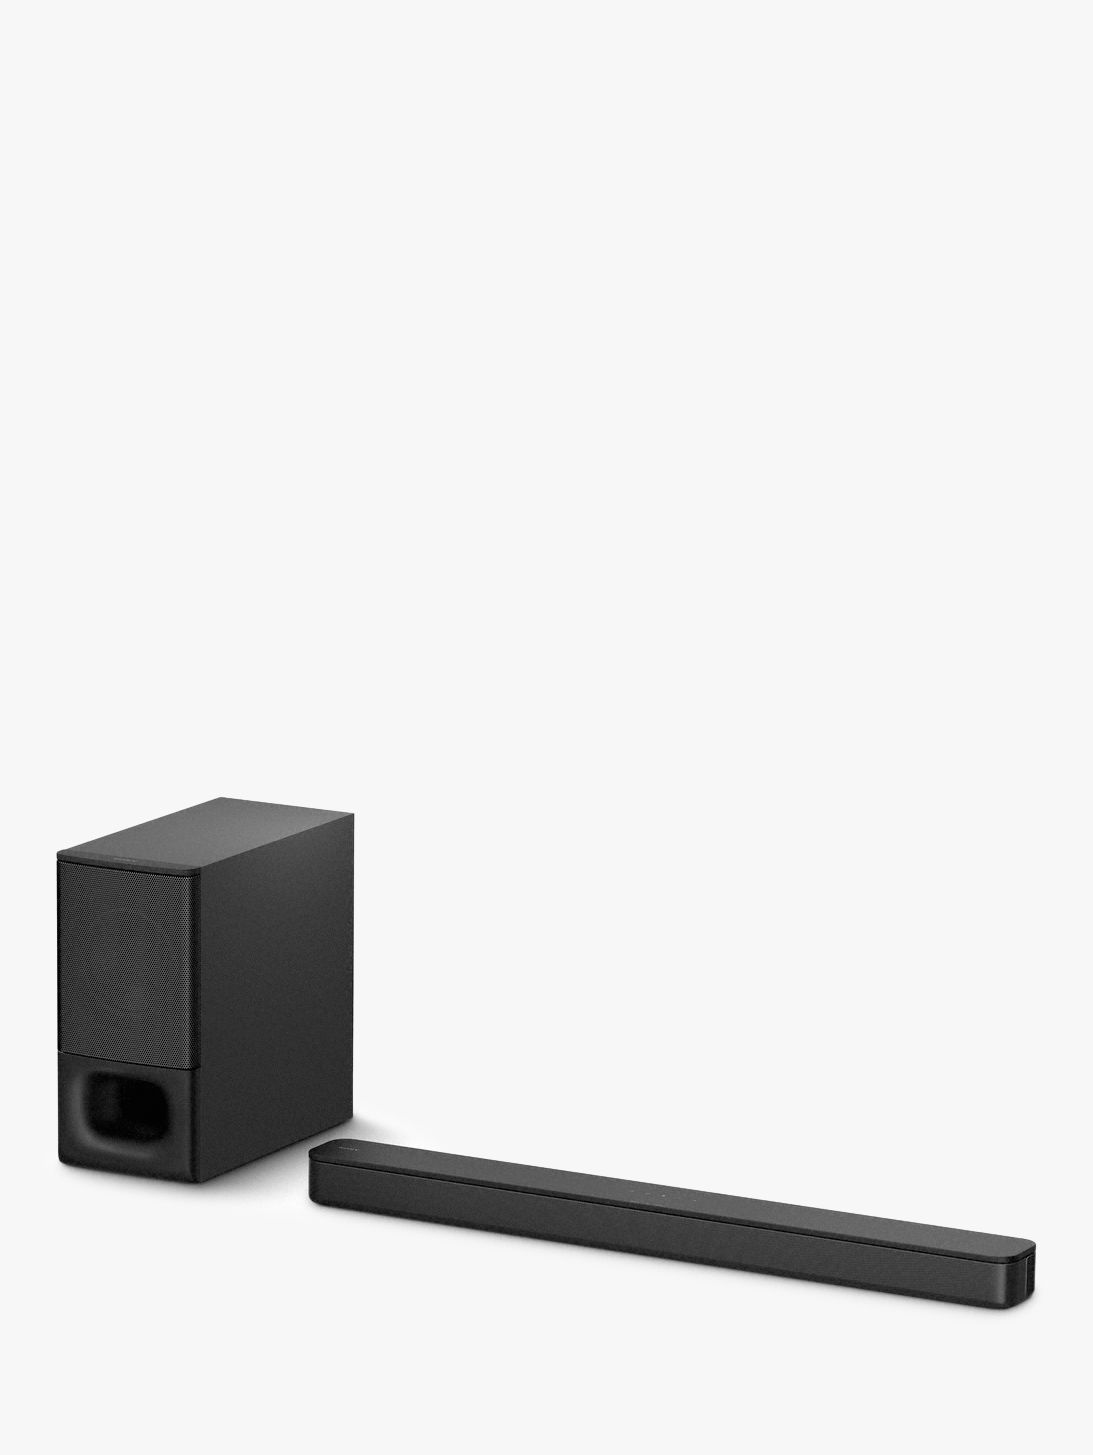 Sony Sony HT-SD35 Bluetooth Sound Bar with Wireless Subwoofer